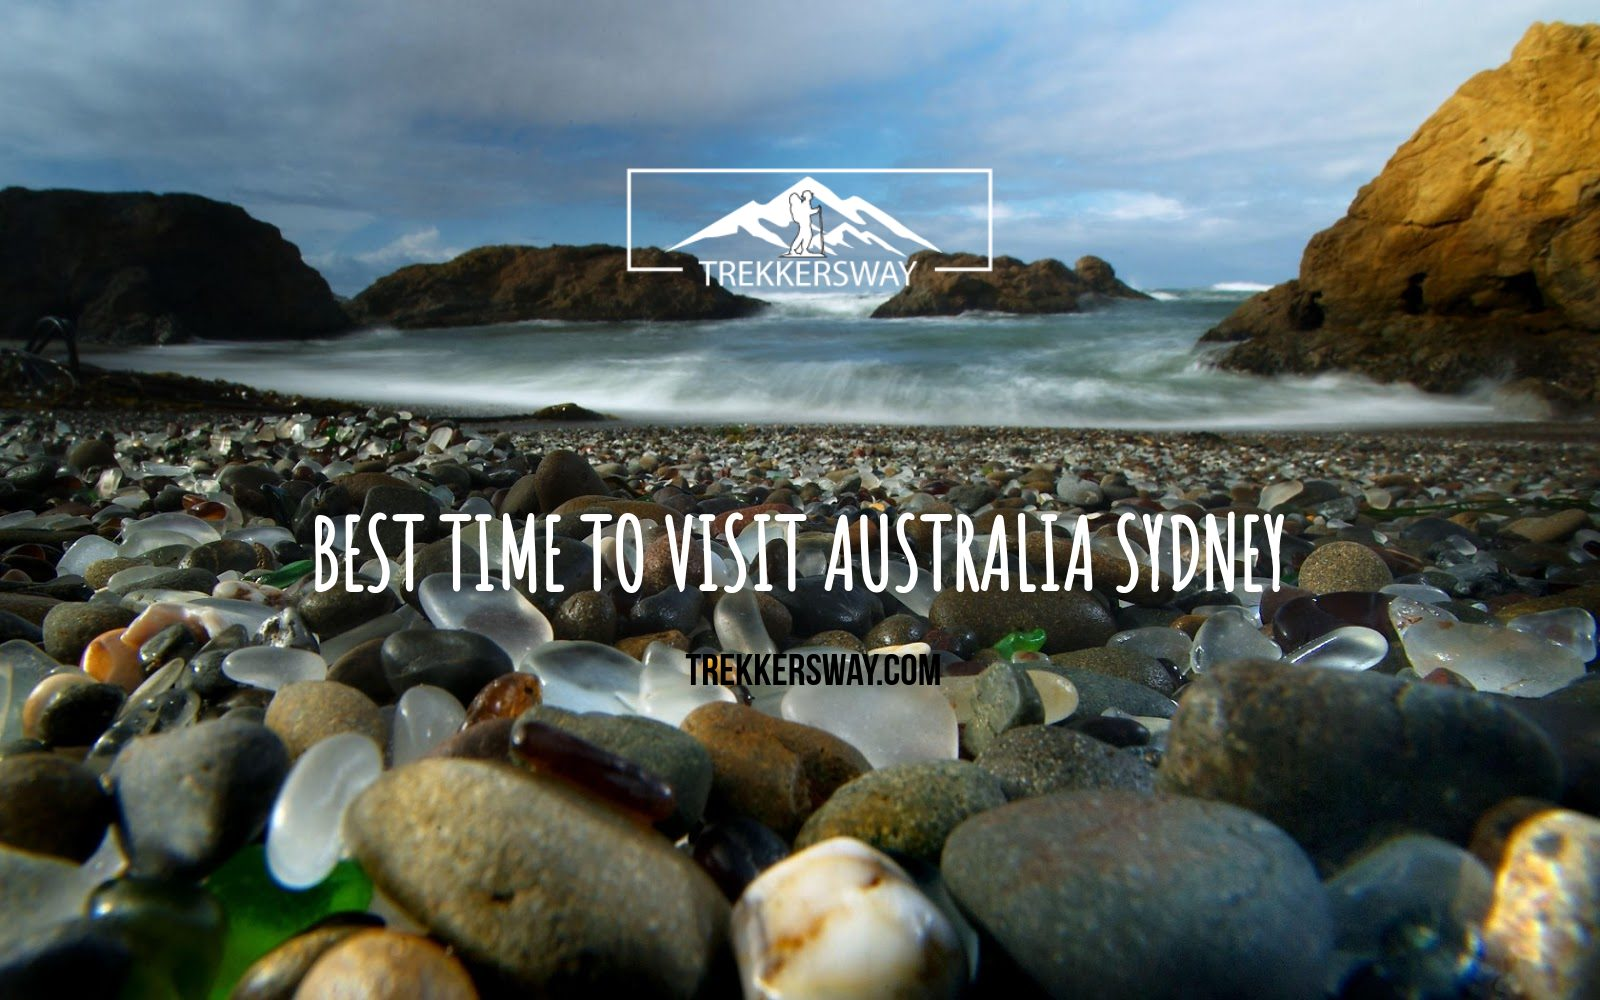 BEST TIME TO VISIT AUSTRALIA SYDNEY